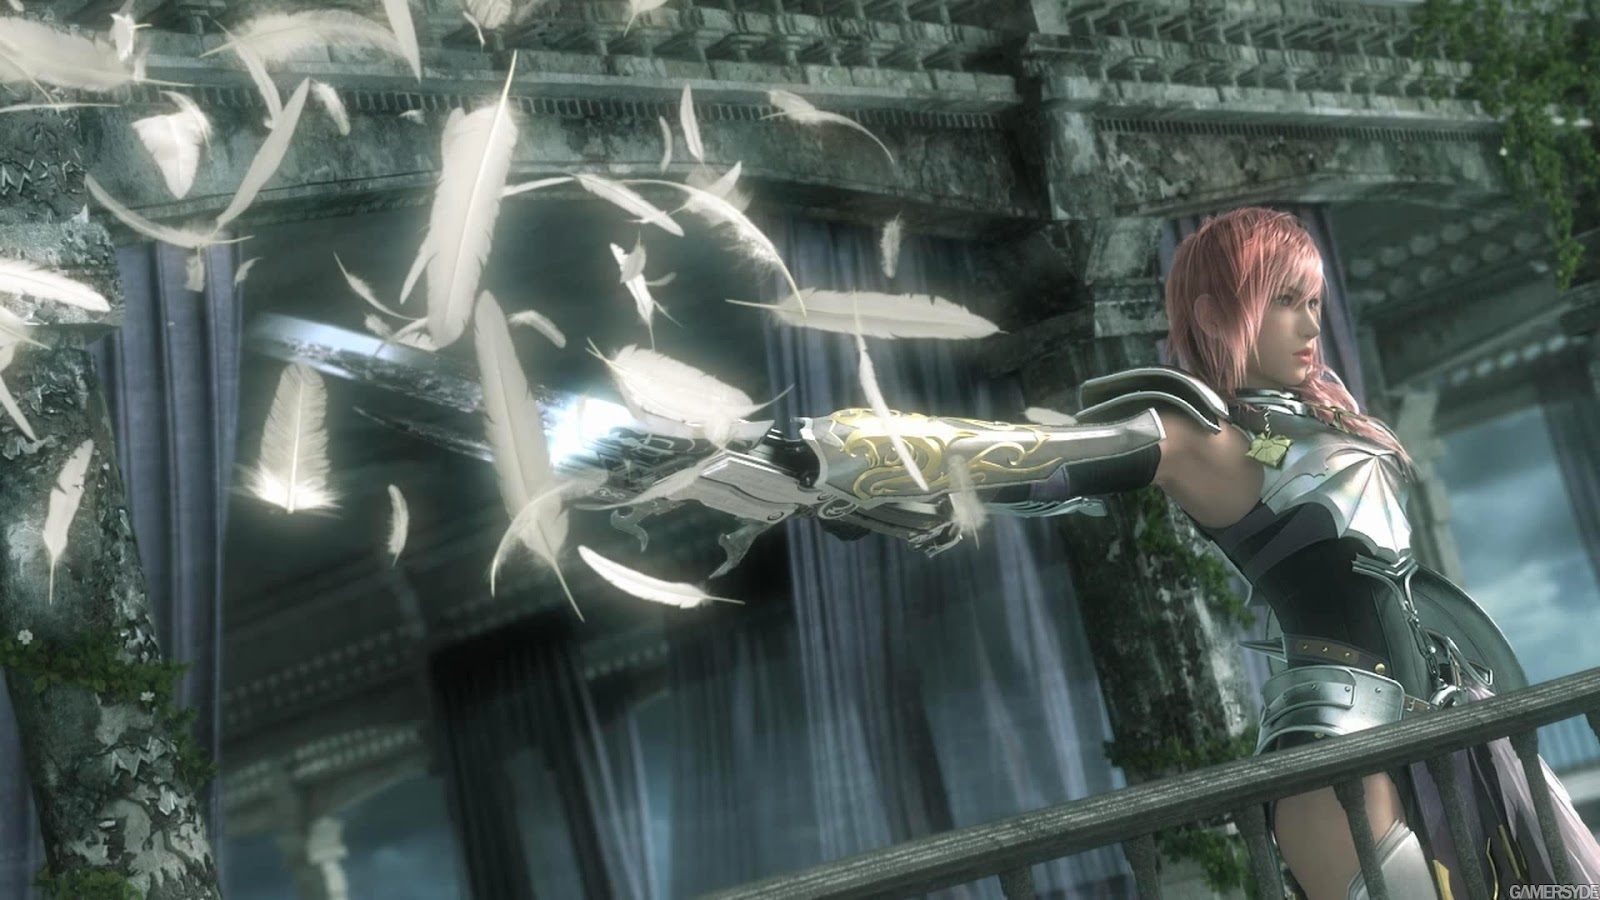 trololo blogg: ffxiii wallpaper 1080p